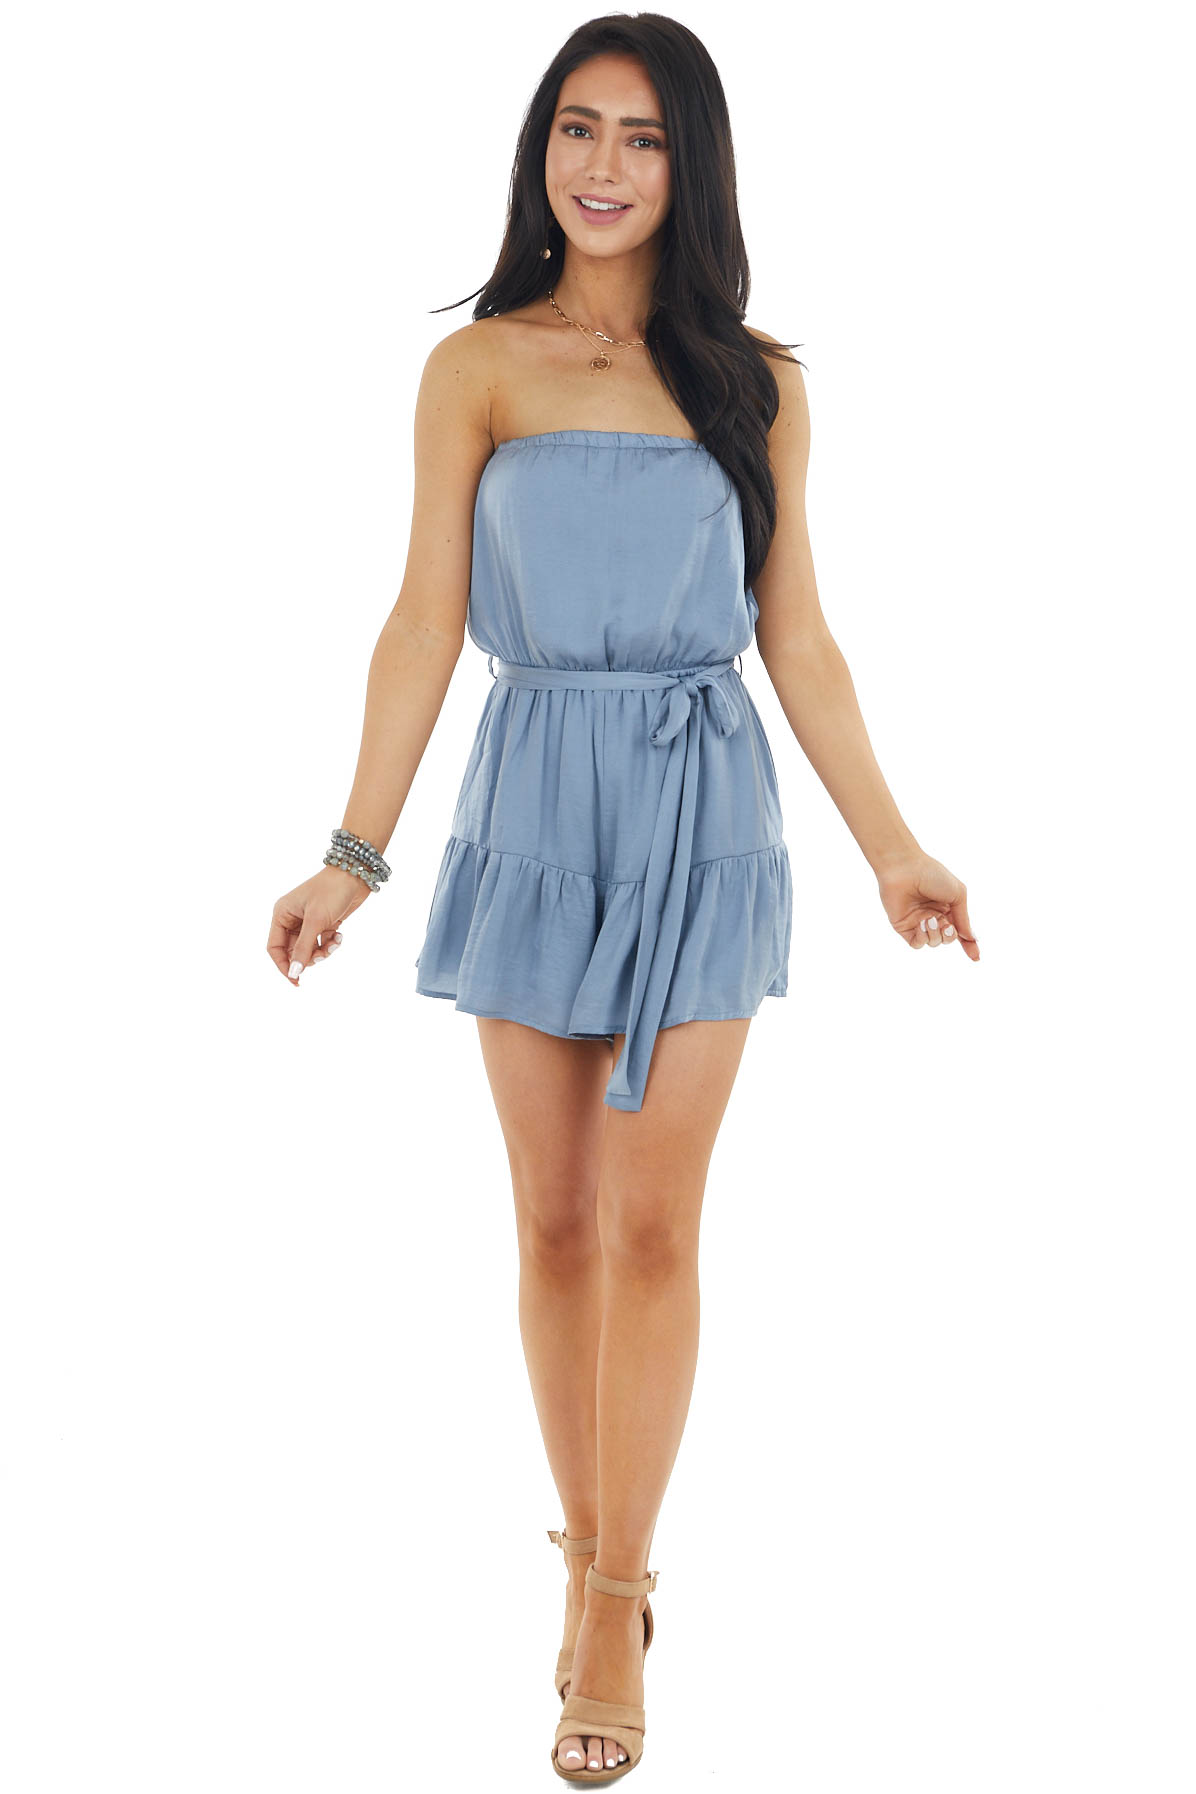 Dusty Blue Silky Strapless Woven Romper with Front Tie